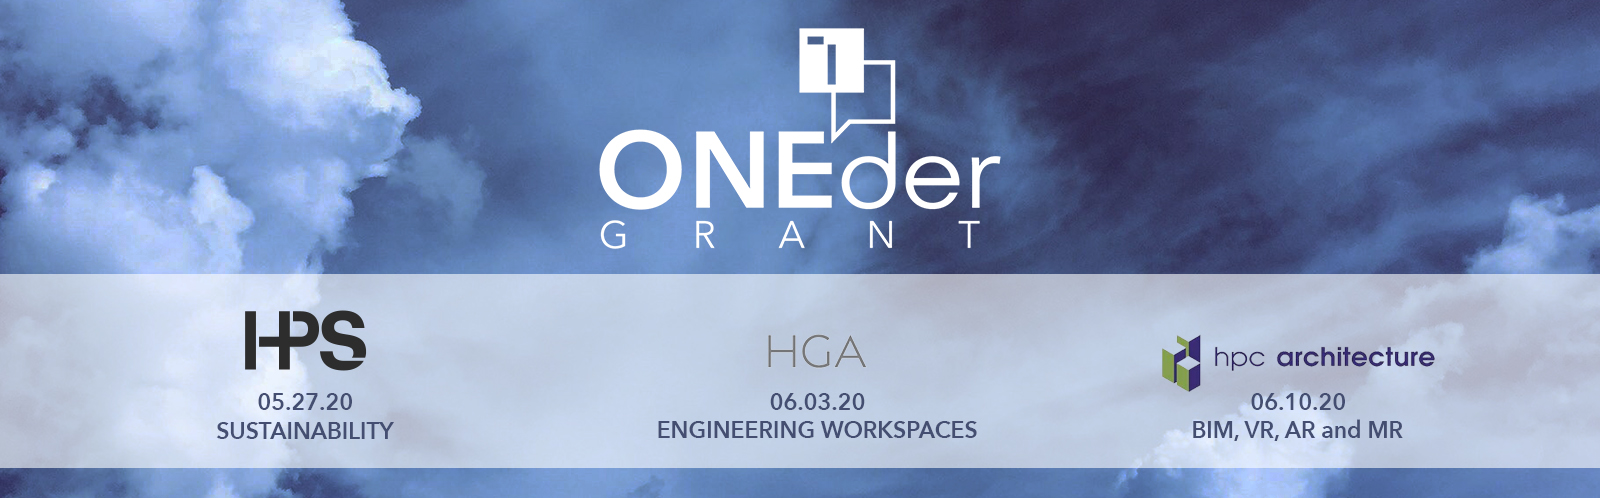 2020_05-27-ONEder Grant - Banner Date Announcement